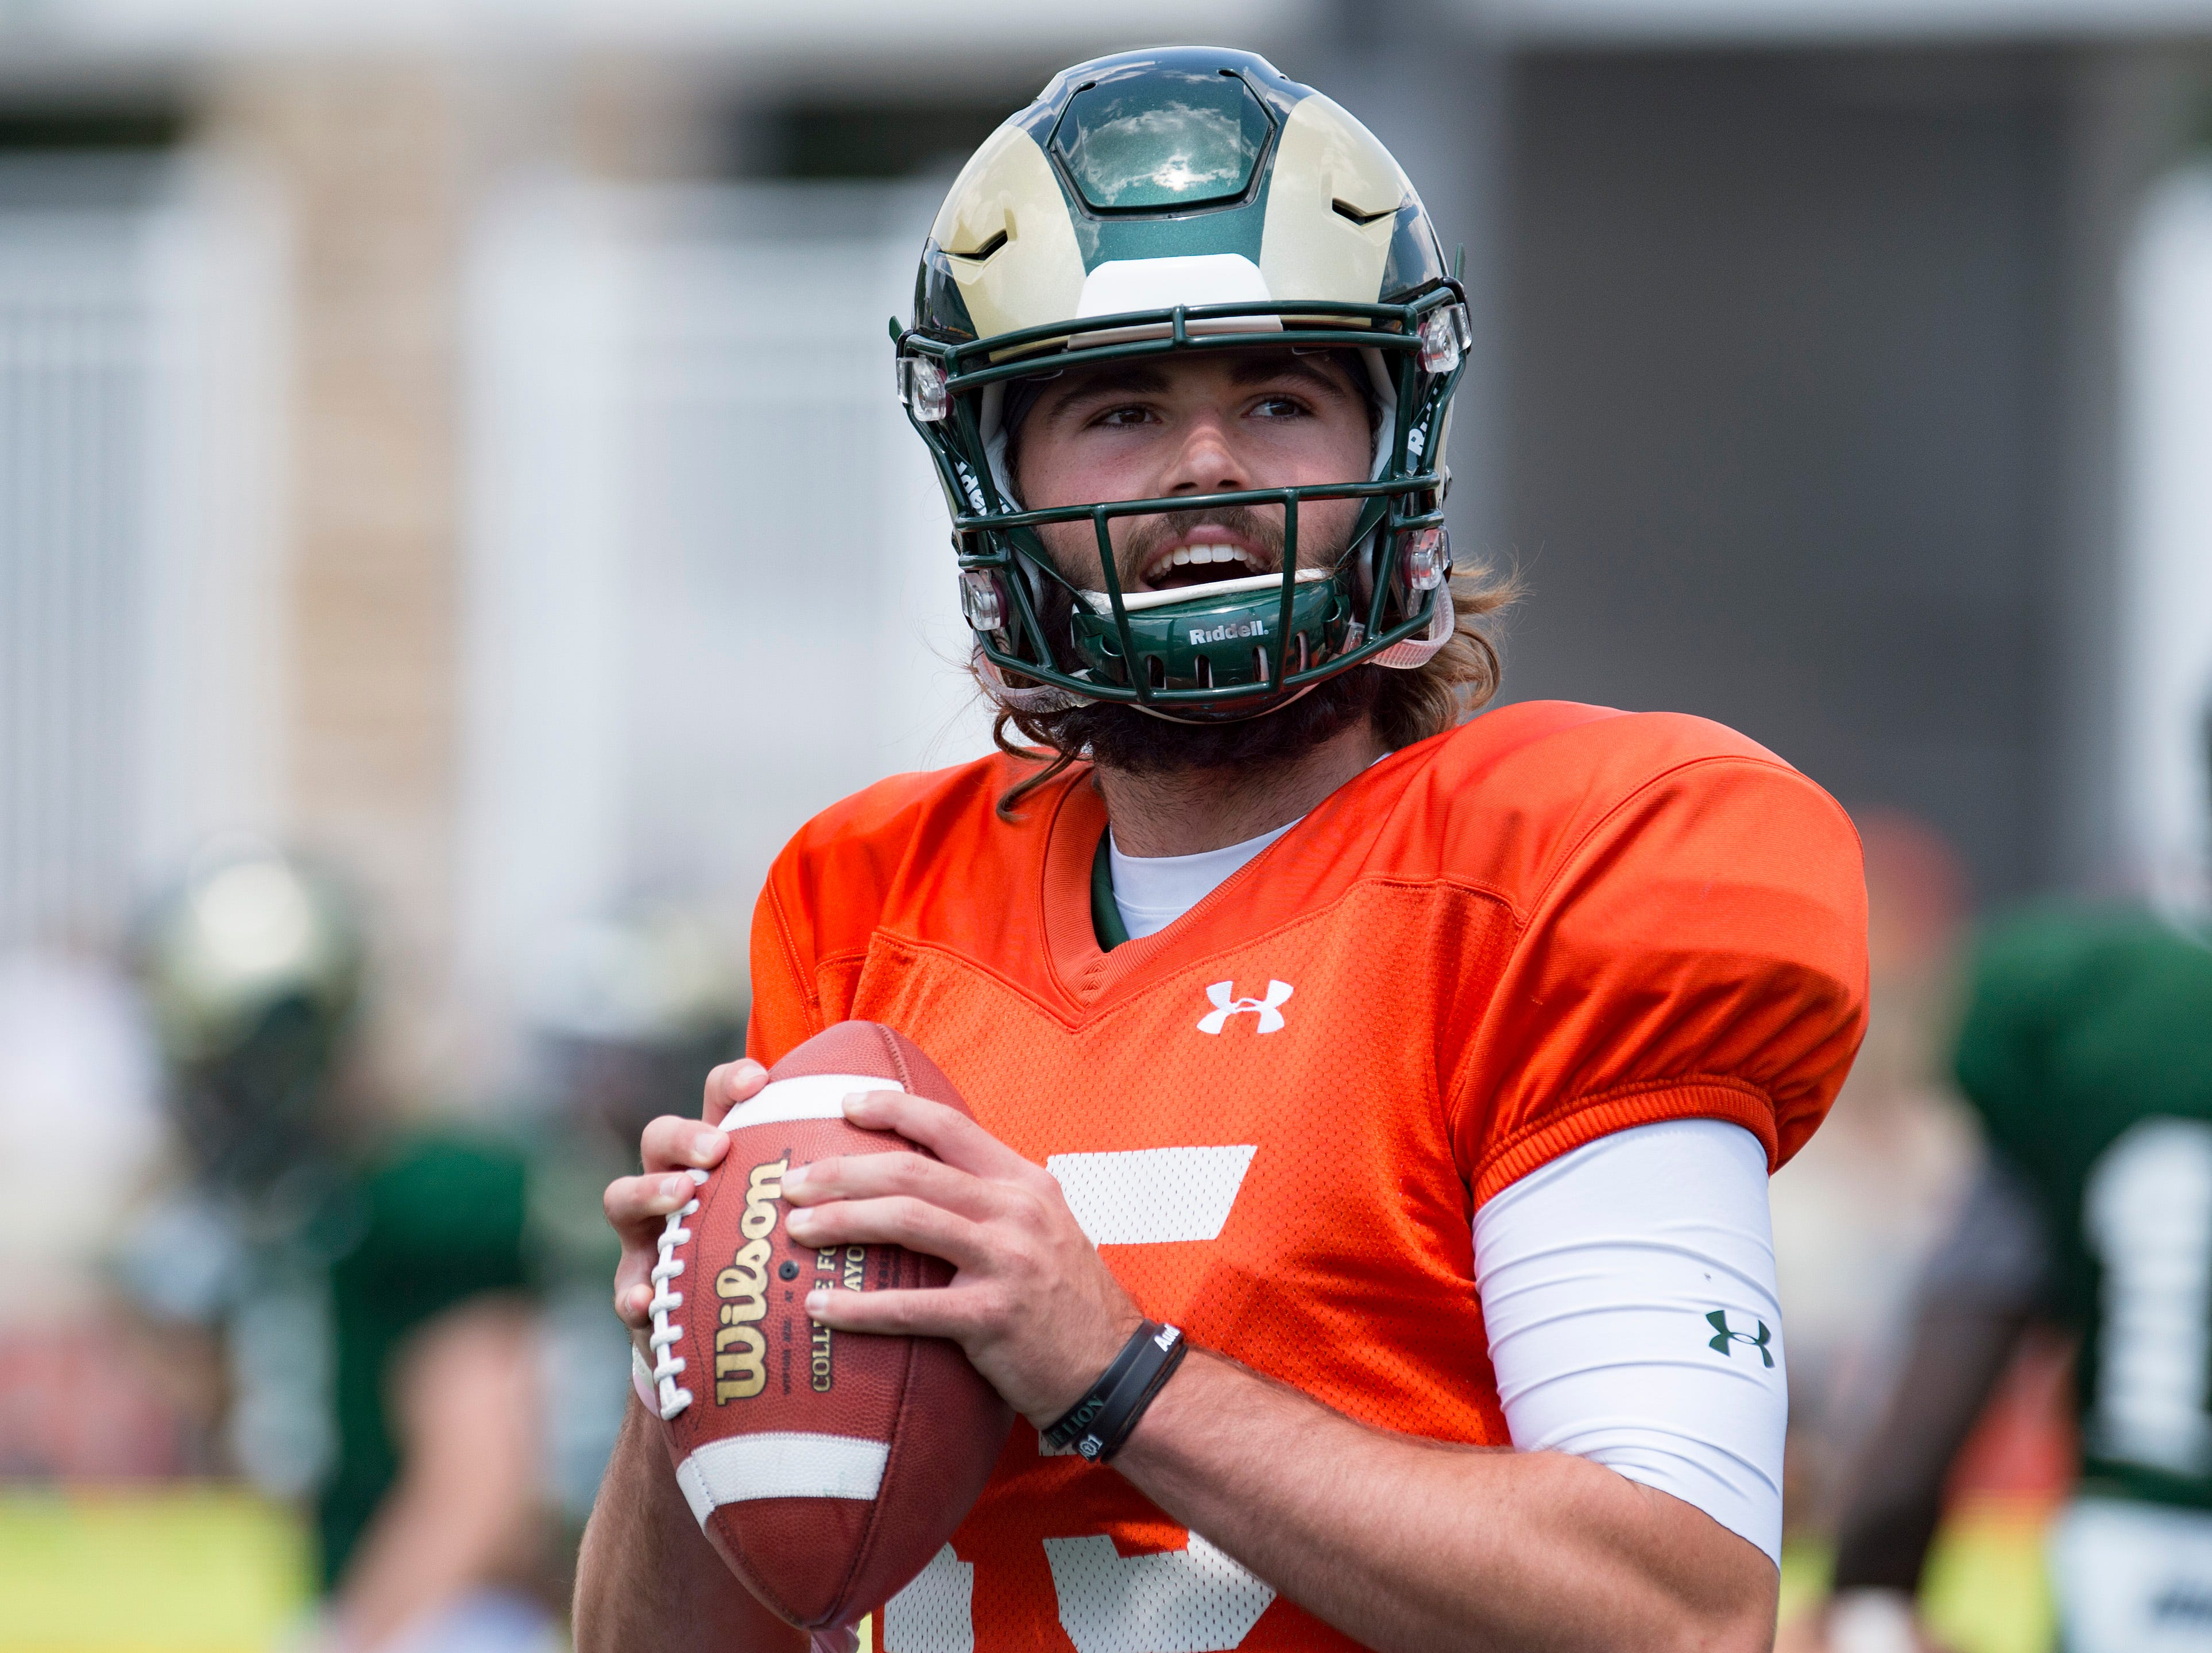 CSU quarterback Collin Hill passes the ball as he warms up for a scrimmage during an open house hosted by the Rams outside of Canvas Stadium on Saturday, August 4, 2018.